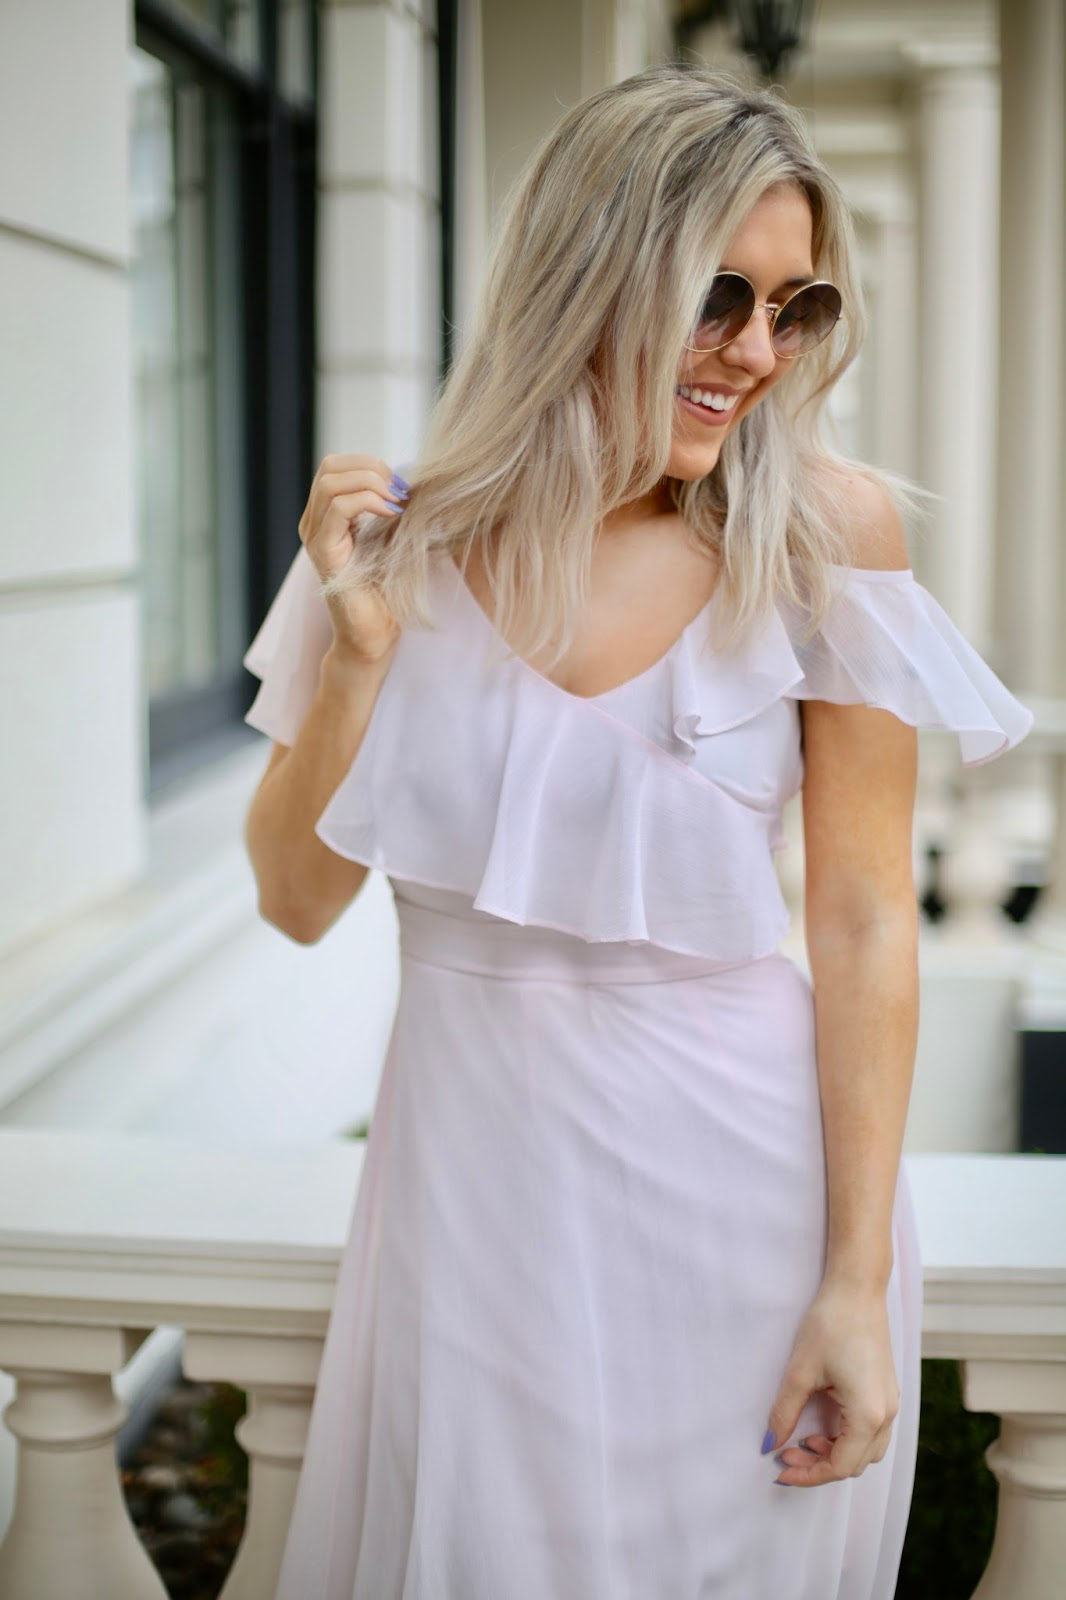 93a5ddfefc2 Emtalks  Styling Tips For A Wedding Guest - What To Wear To A Wedding